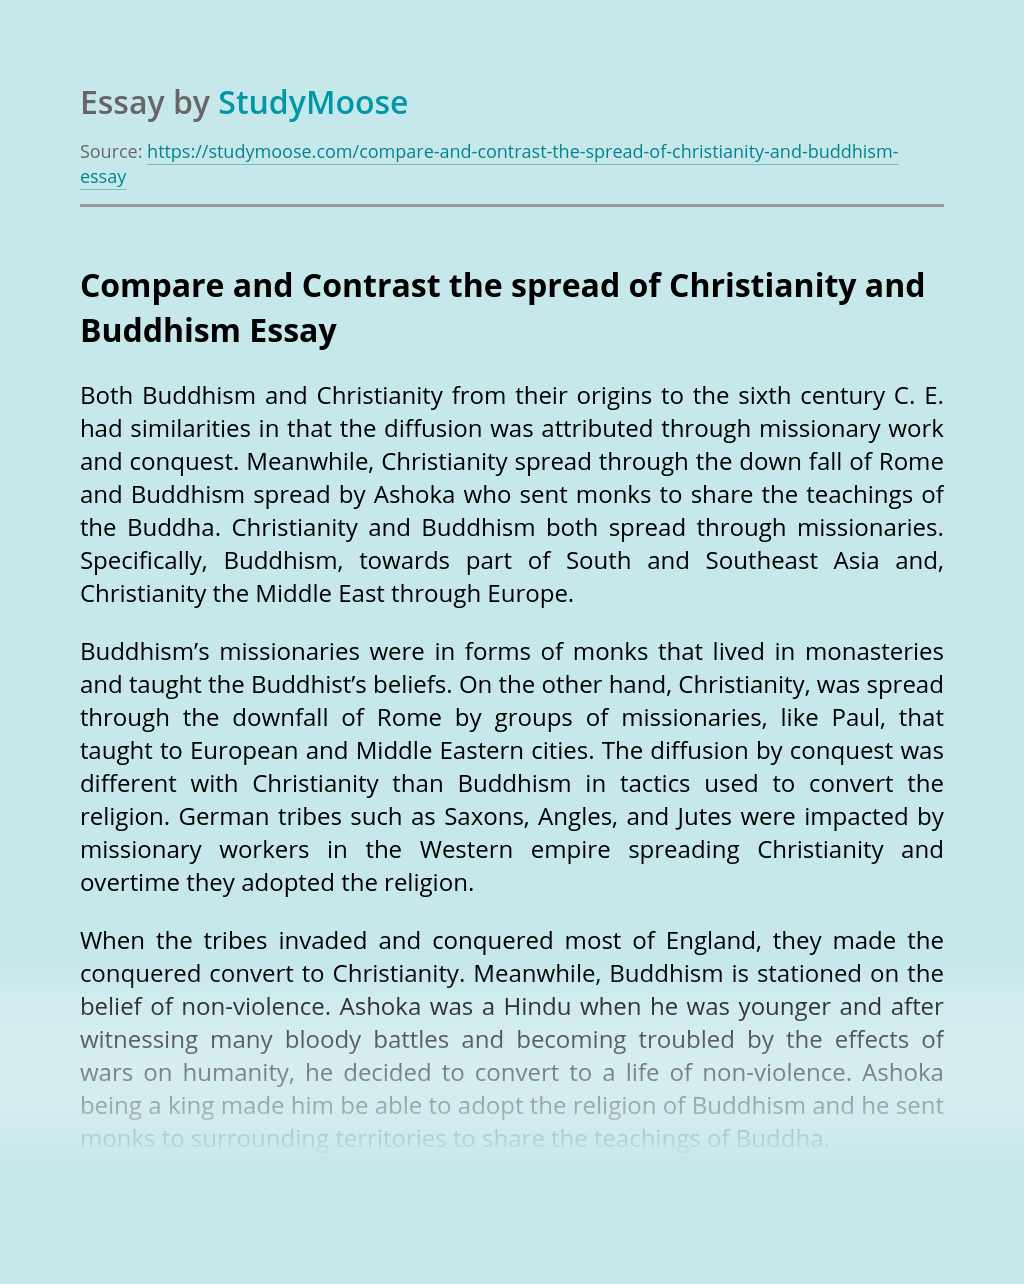 Compare and Contrast the spread of Christianity and Buddhism